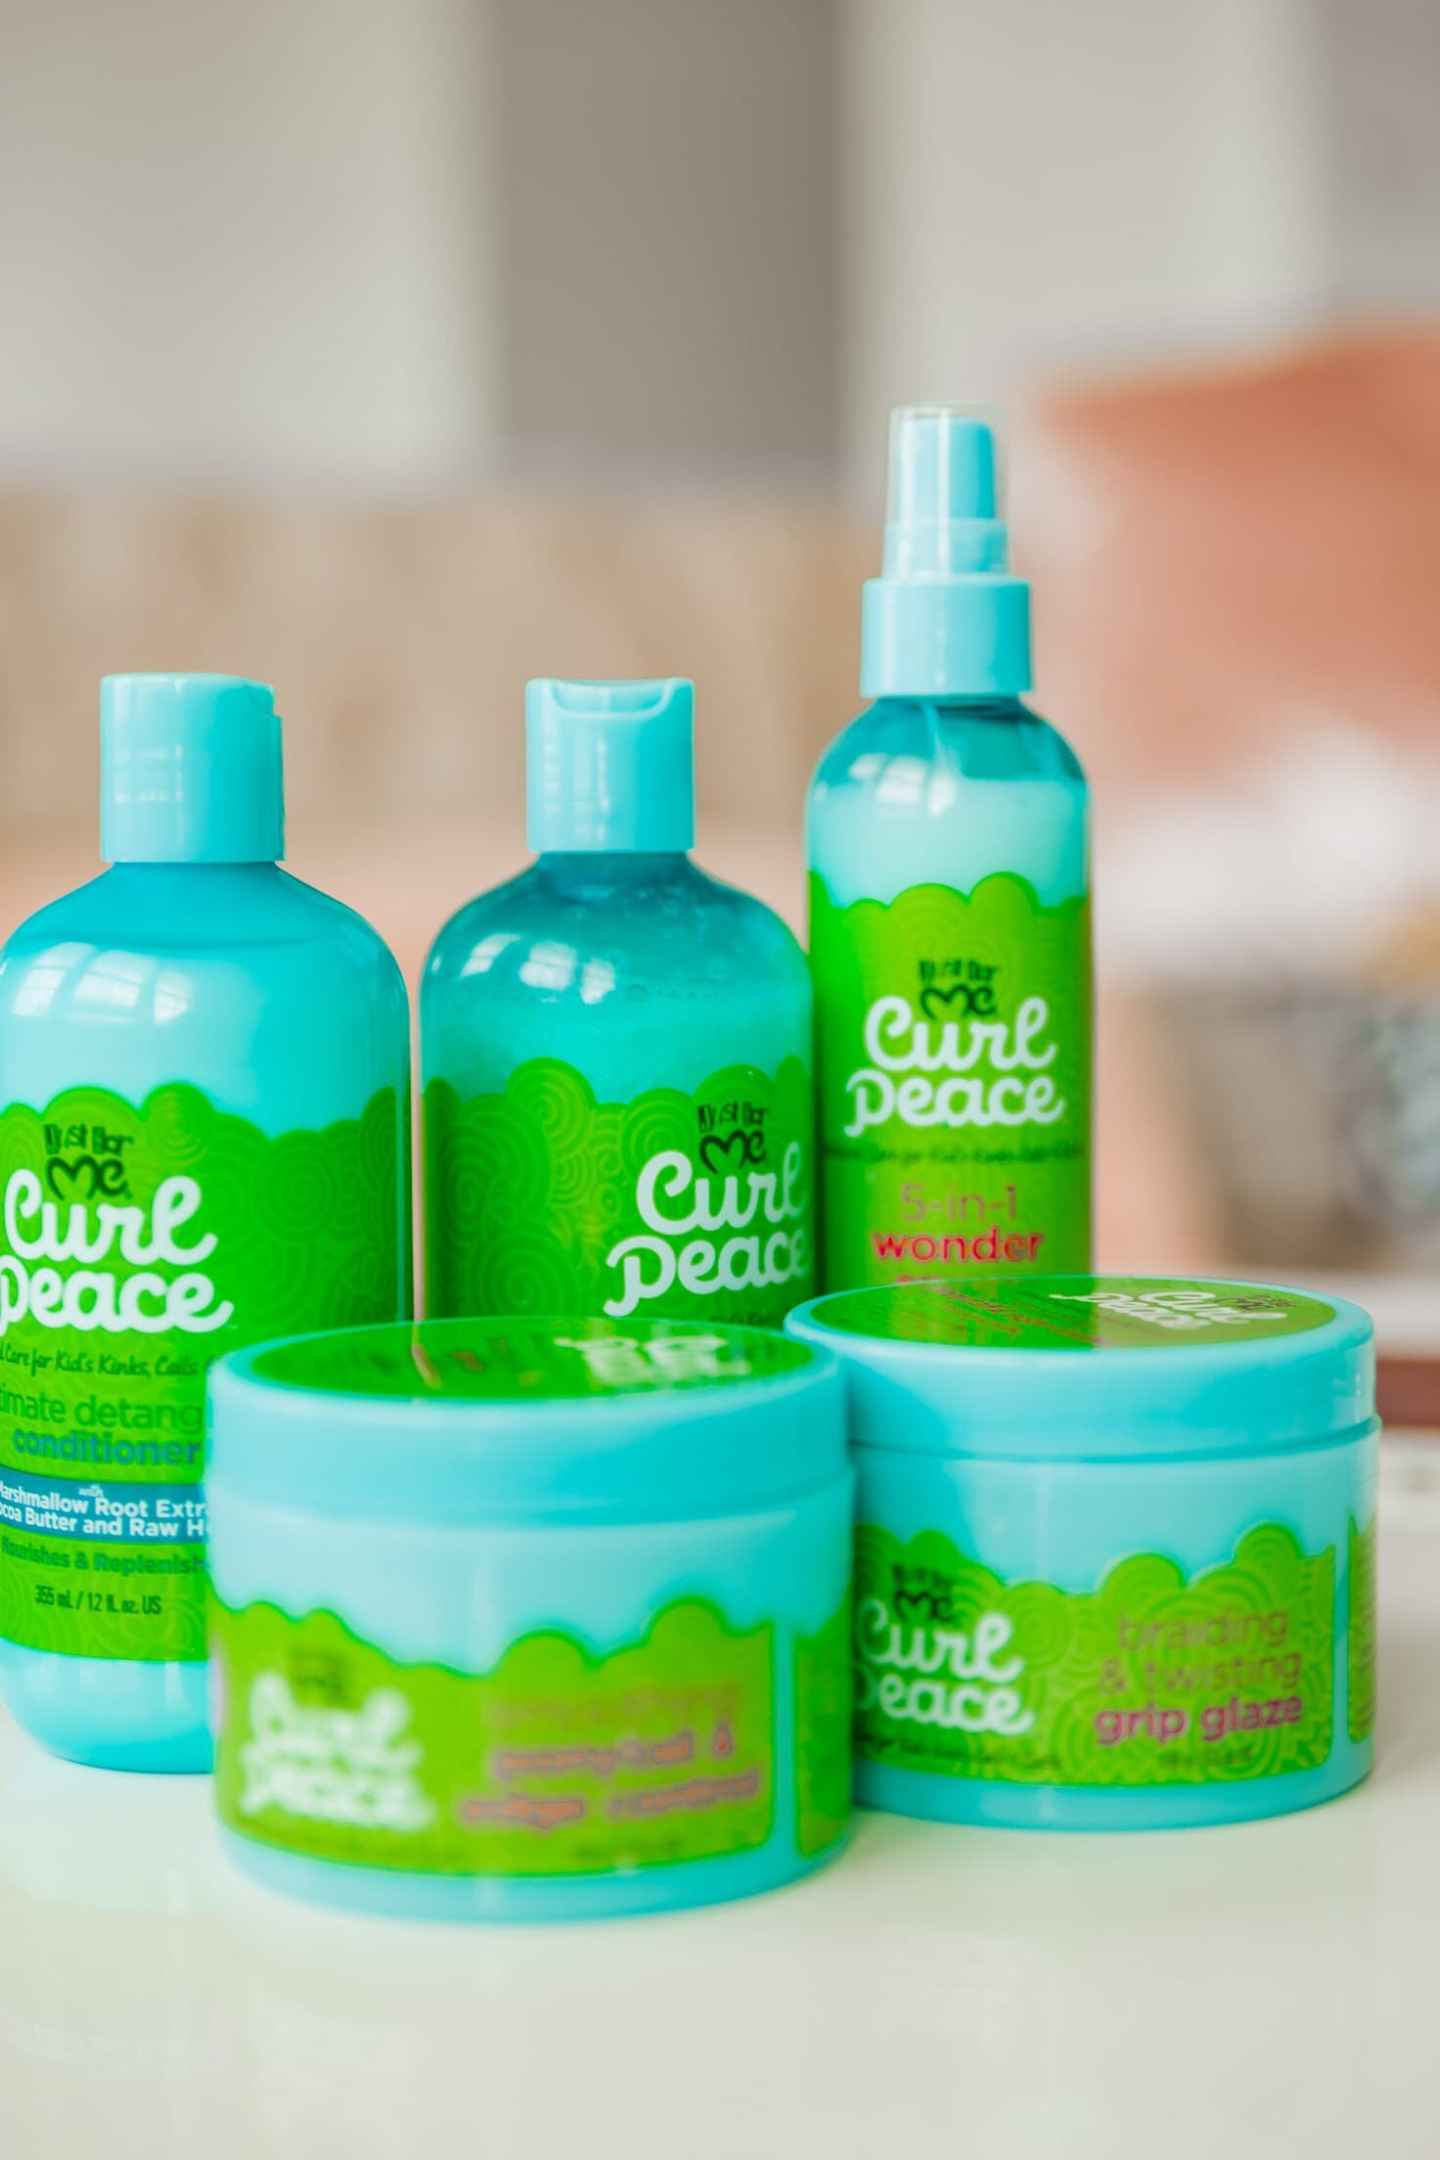 curl peace hair products